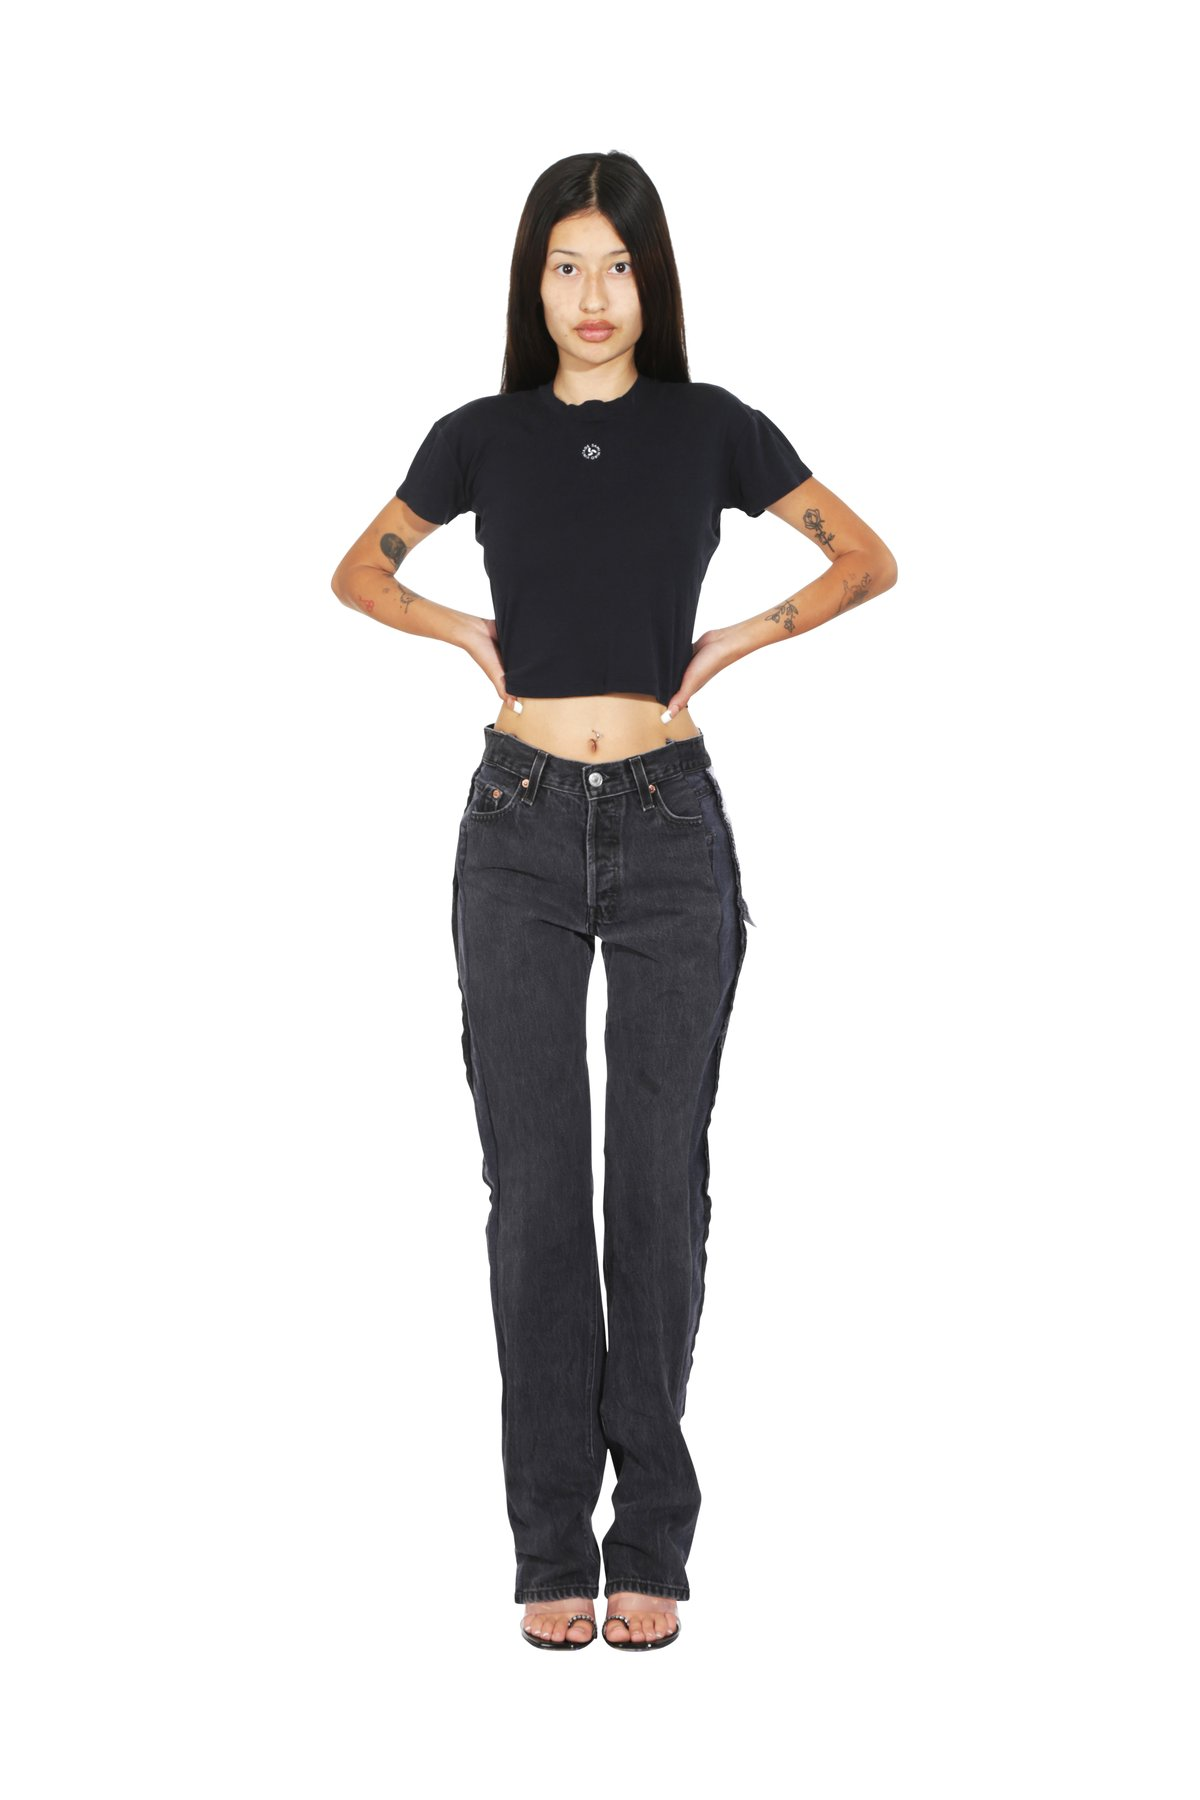 PORTERHOUSE JEANS IN VINTAGE BLACK by Sami Miro Vintage, available on samimirovintage.com for $425 Kylie Jenner Pants Exact Product